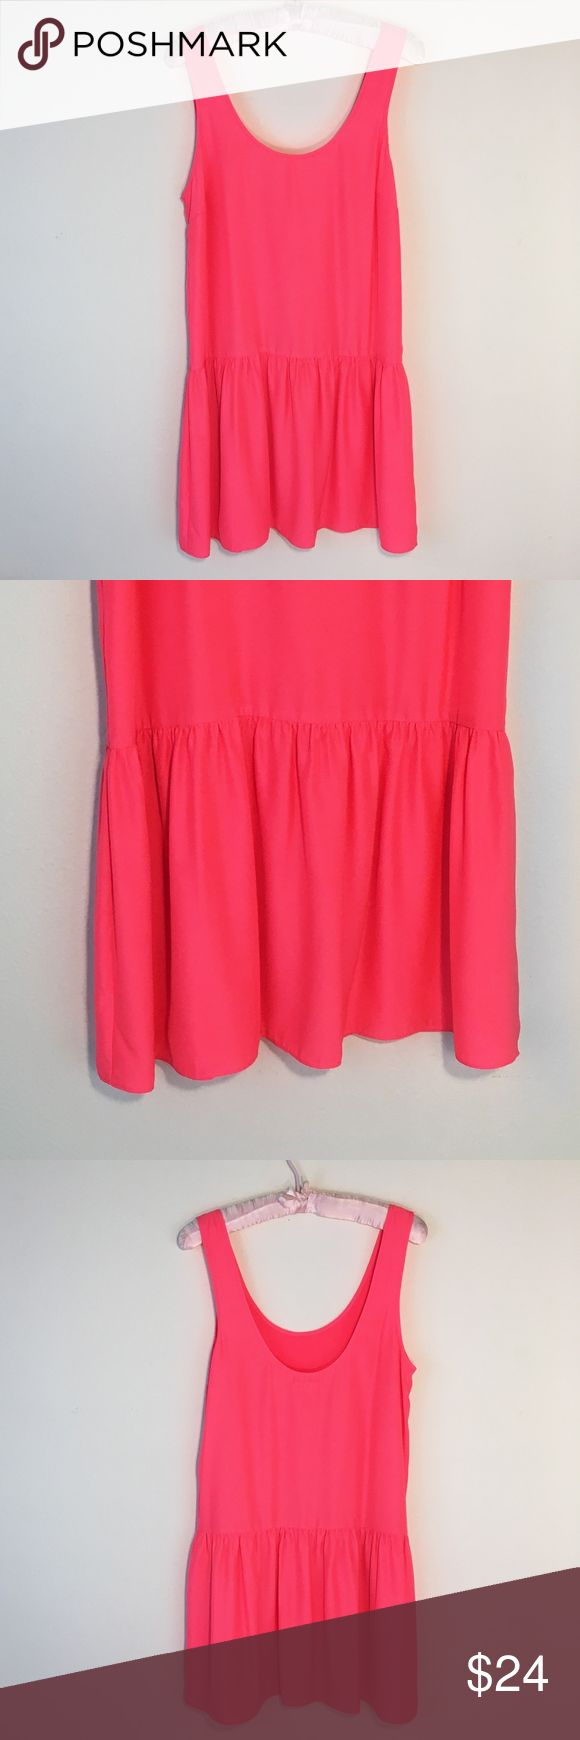 "Urban Outfitters Hot-Pink Mini Dress Size M Bright hot-pink mini dress in excellent condition! 33.5"" long from the top of the strap to the bottom of the skirt. Brand is Silence + Noise. Urban Outfitters Dresses"